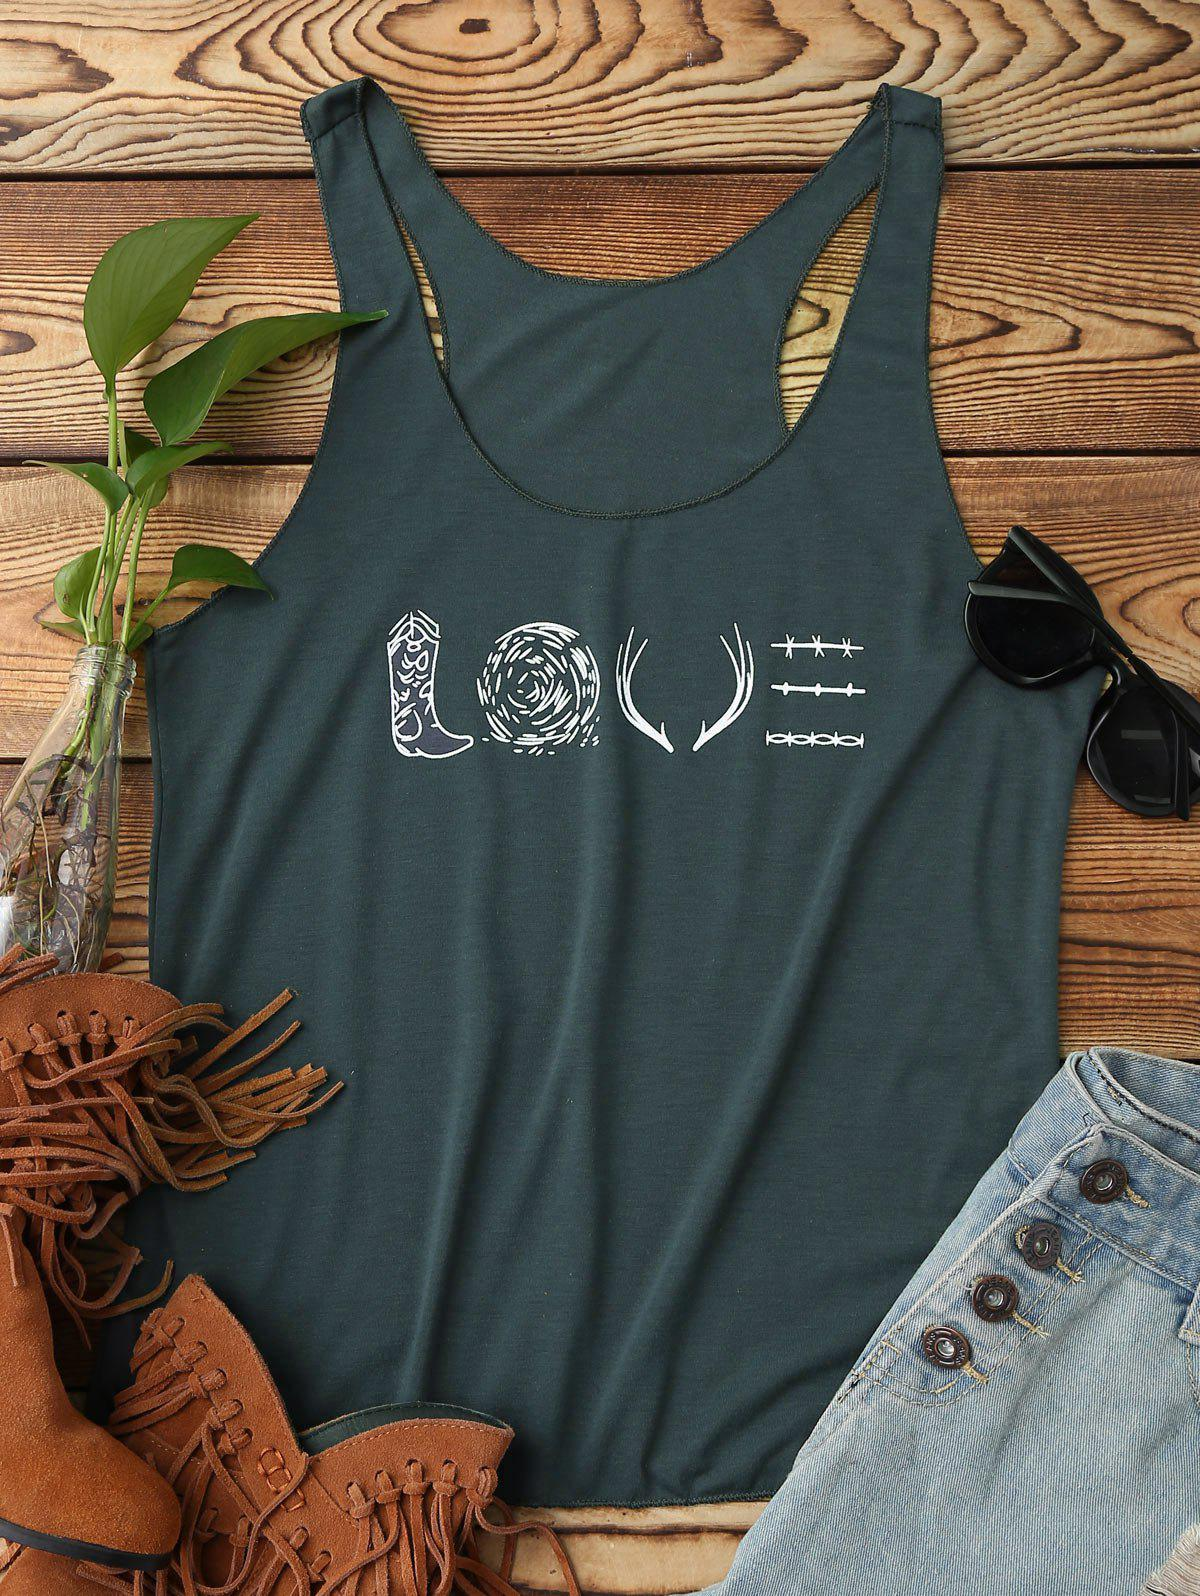 LOVE Graphic Tank Top scoop collar elephant print graphic tank top